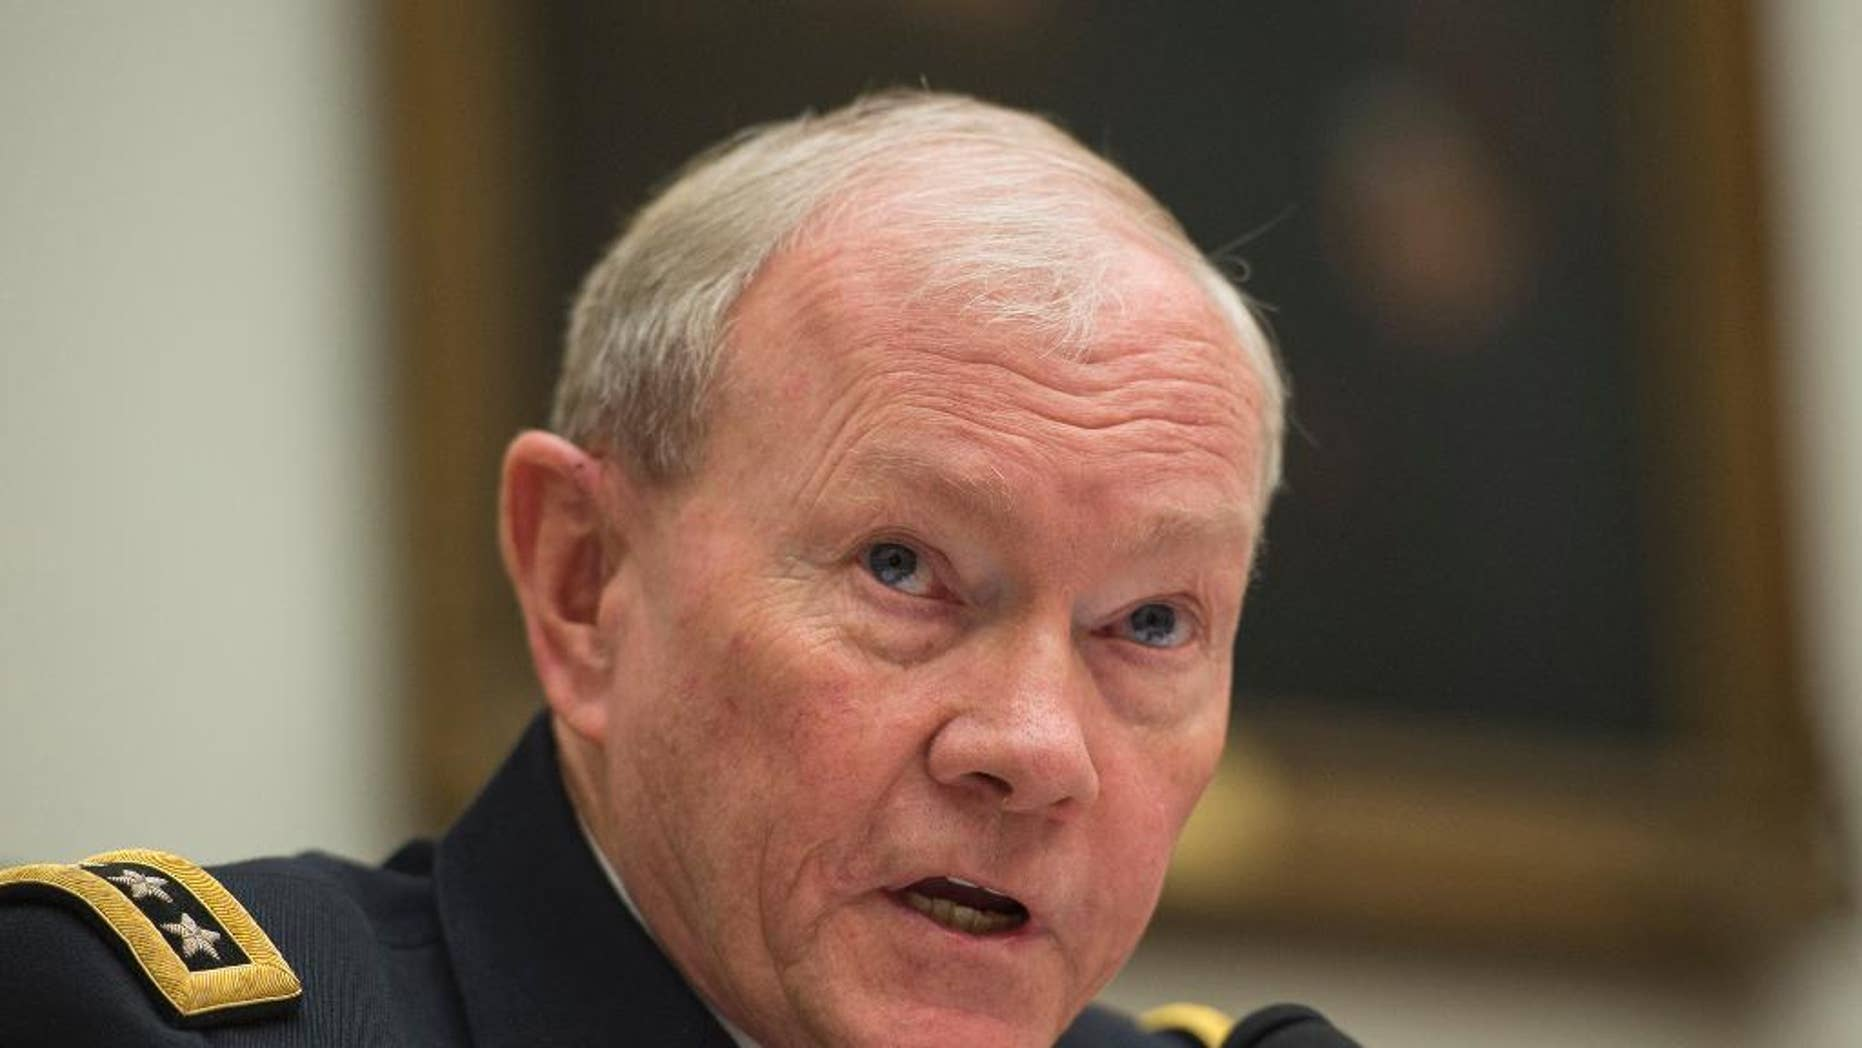 FILE - In this March 18, 2015, file photo, Joint Chiefs Chairman Gen. Martin Dempsey testifies on Capitol Hill in Washington. In the homestretch of a 41-year U.S. Army career shaped by war and the scars from it, Dempsey does not hide his skepticism that Iraq will find its own path to lasting victory over the Islamic State group. But neither does he say the threats to Iraq today justify sending American ground troops back into combat. He counsels patience, for now.  (AP Photo/Molly Riley, File)